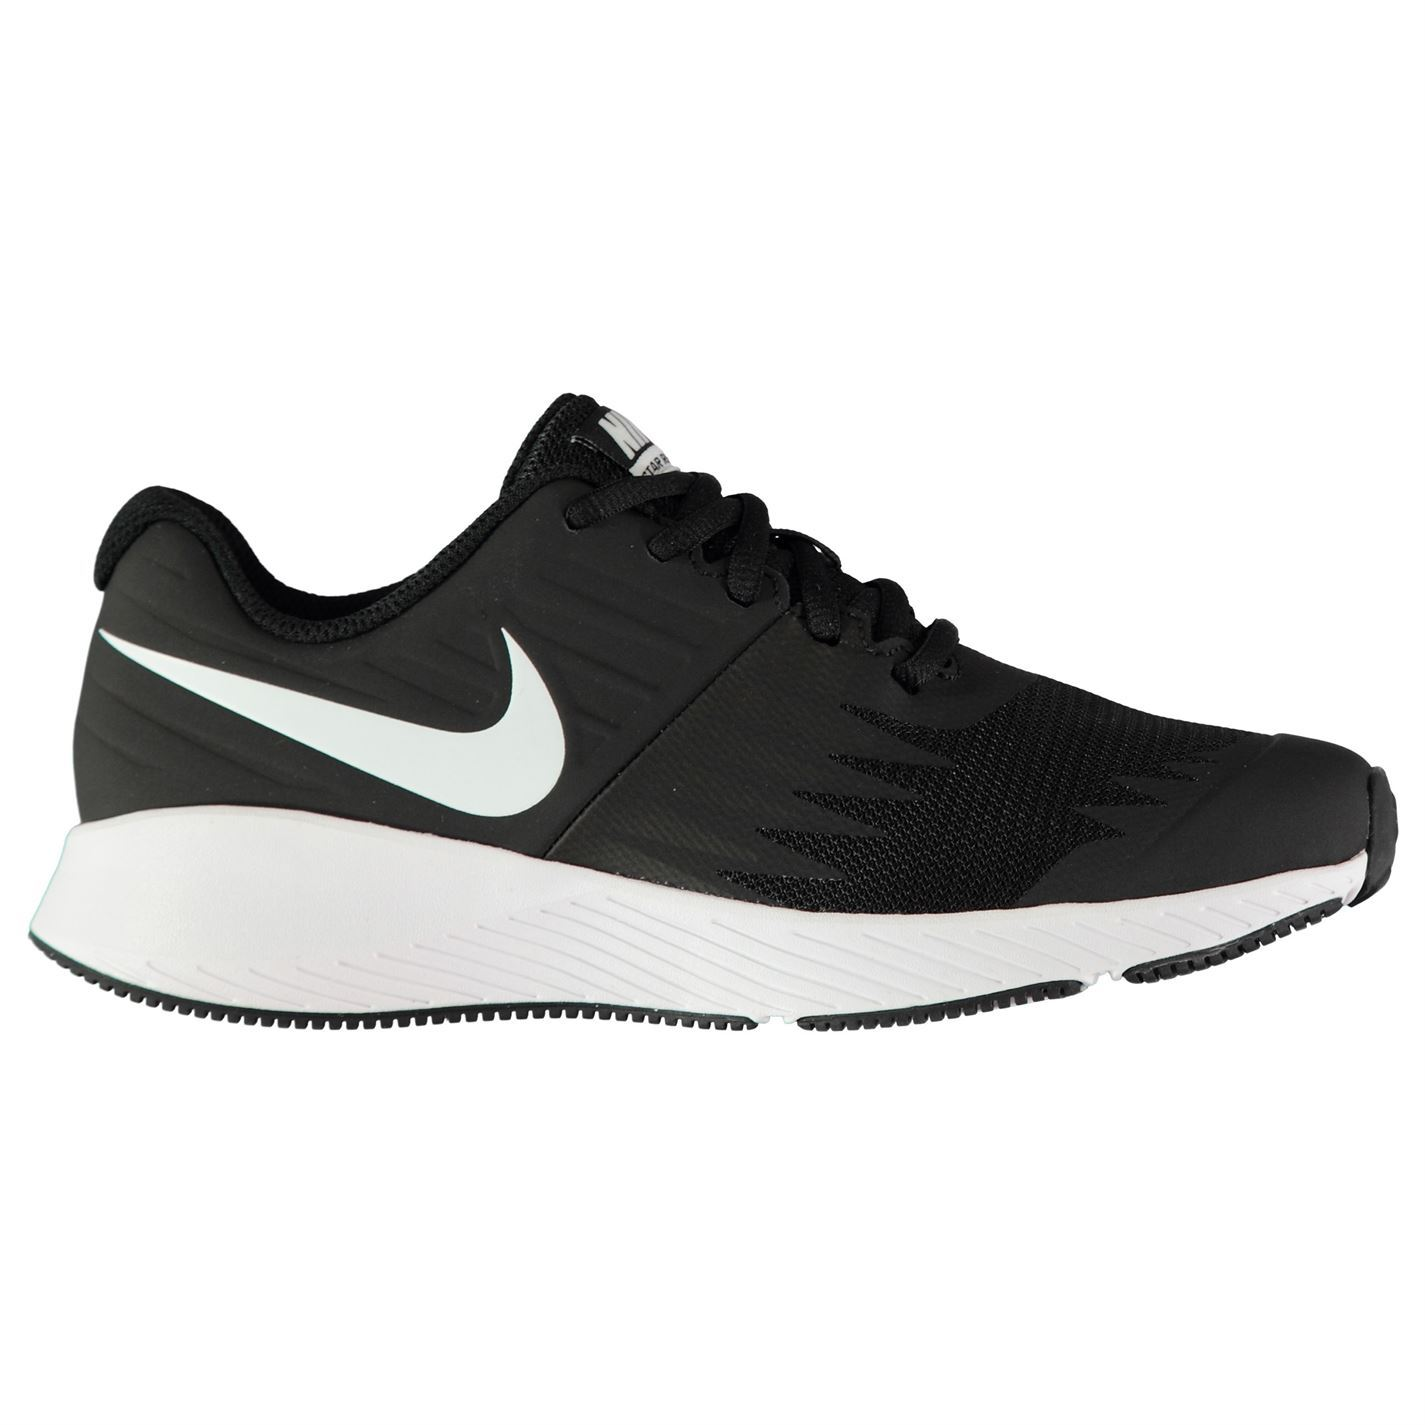 d933ef2392 Nike-Star-Runner-Junior-Boys-Trainers-Shoes-Footwear thumbnail